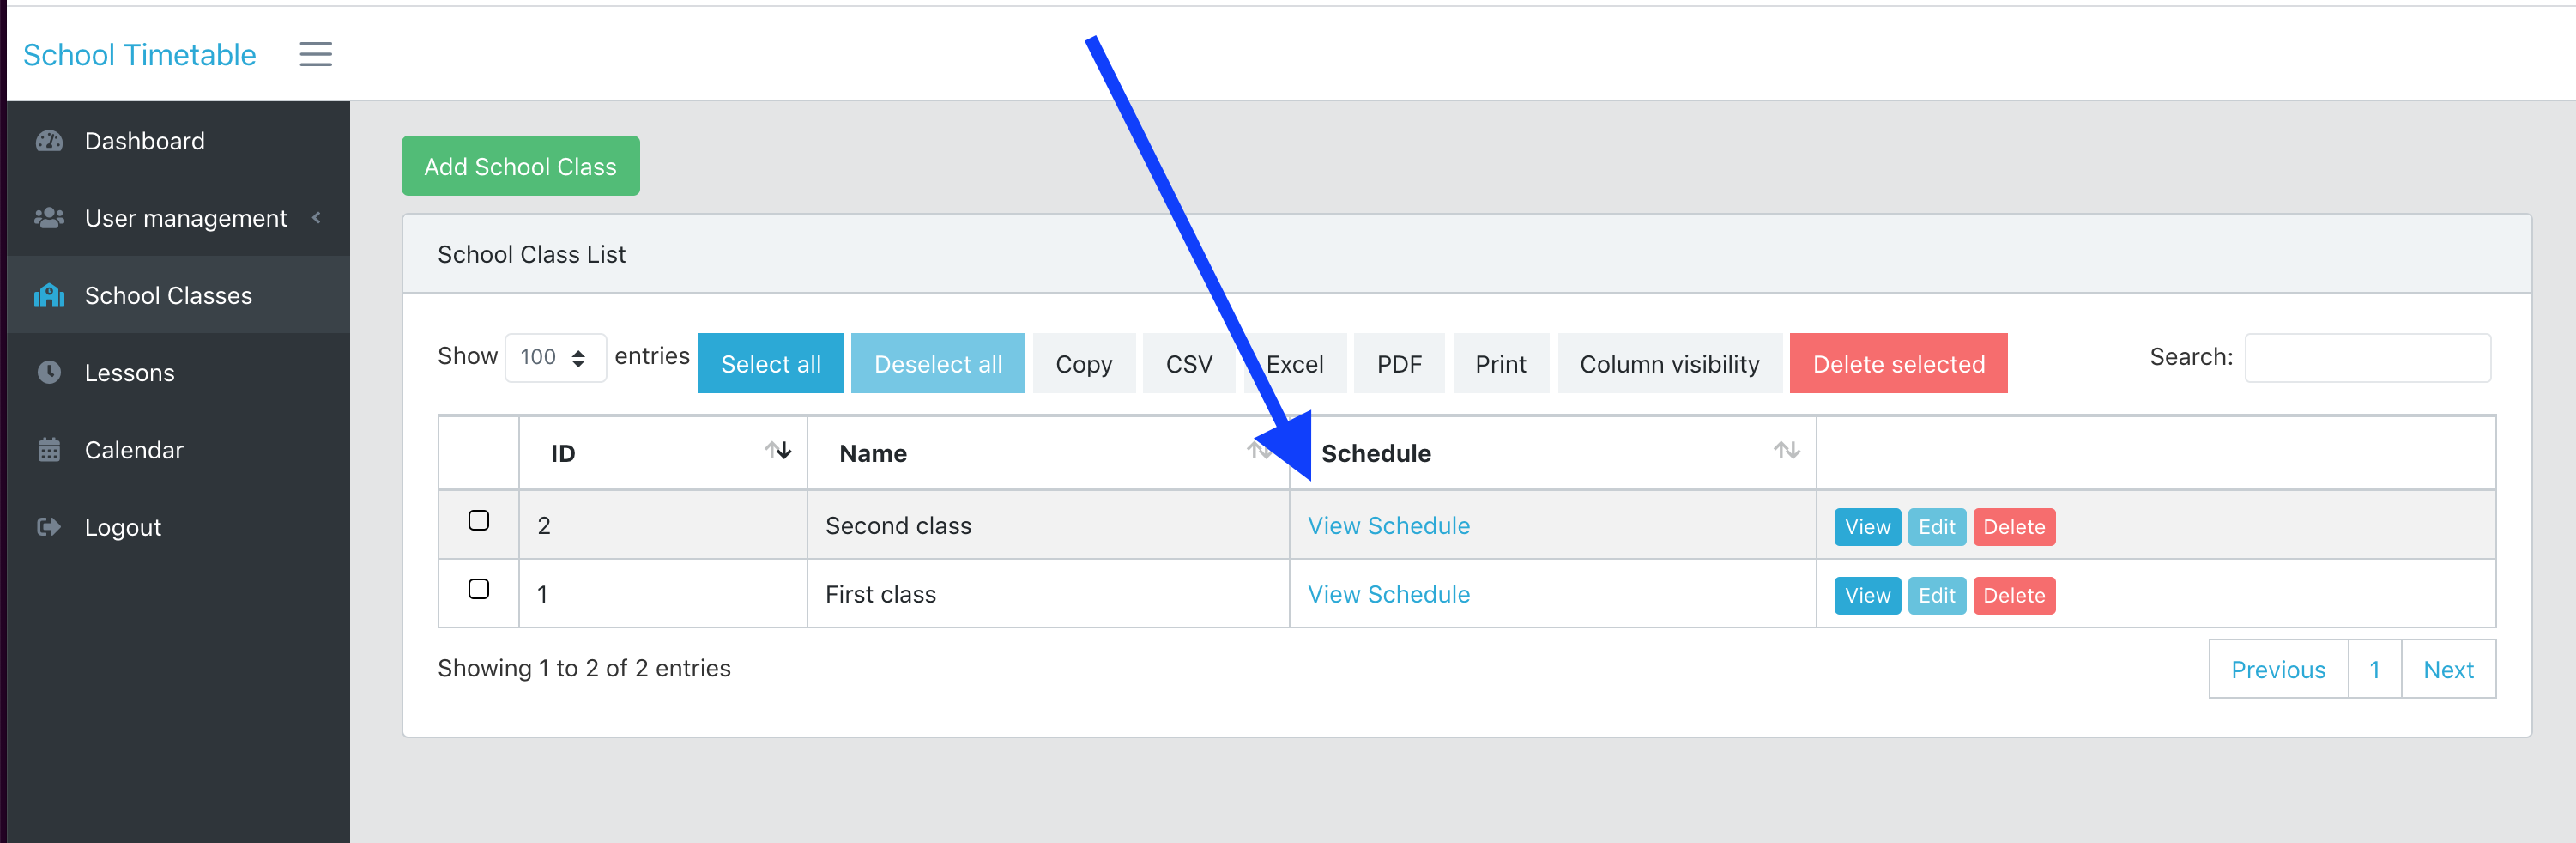 Laravel school timetable by class